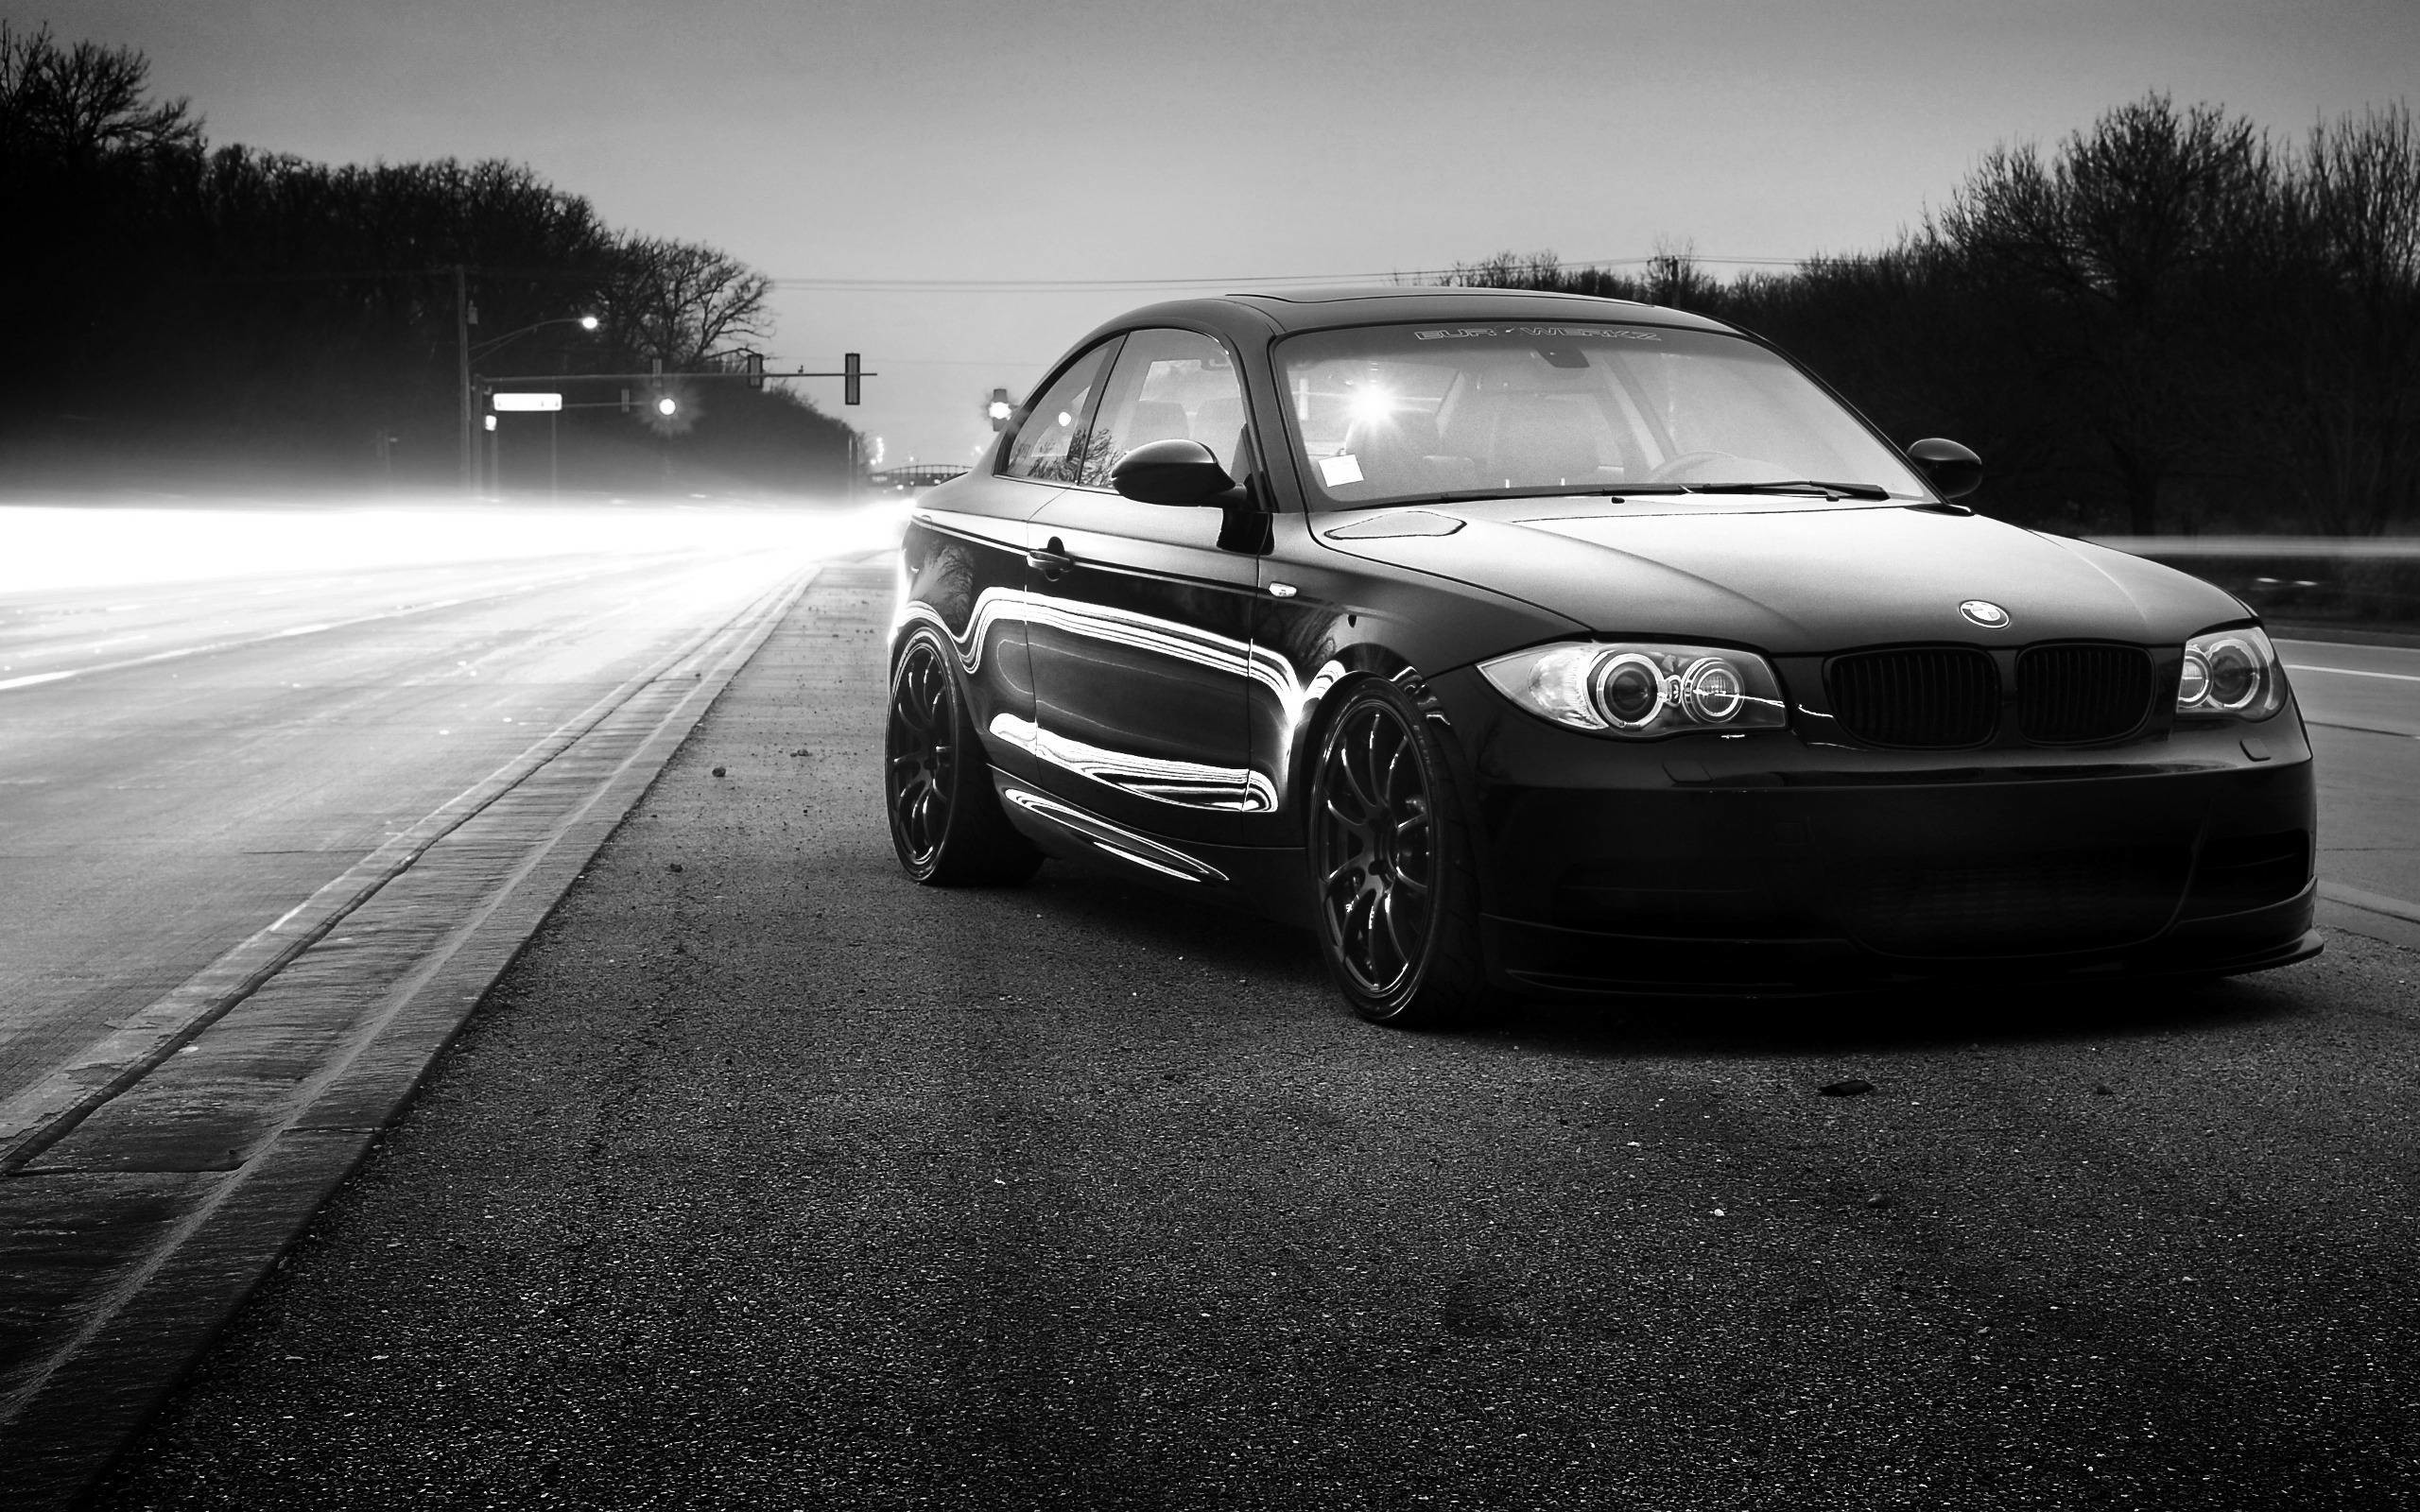 Res: 2560x1600, BMW 135i wallpapers and images - wallpapers, pictures, photos